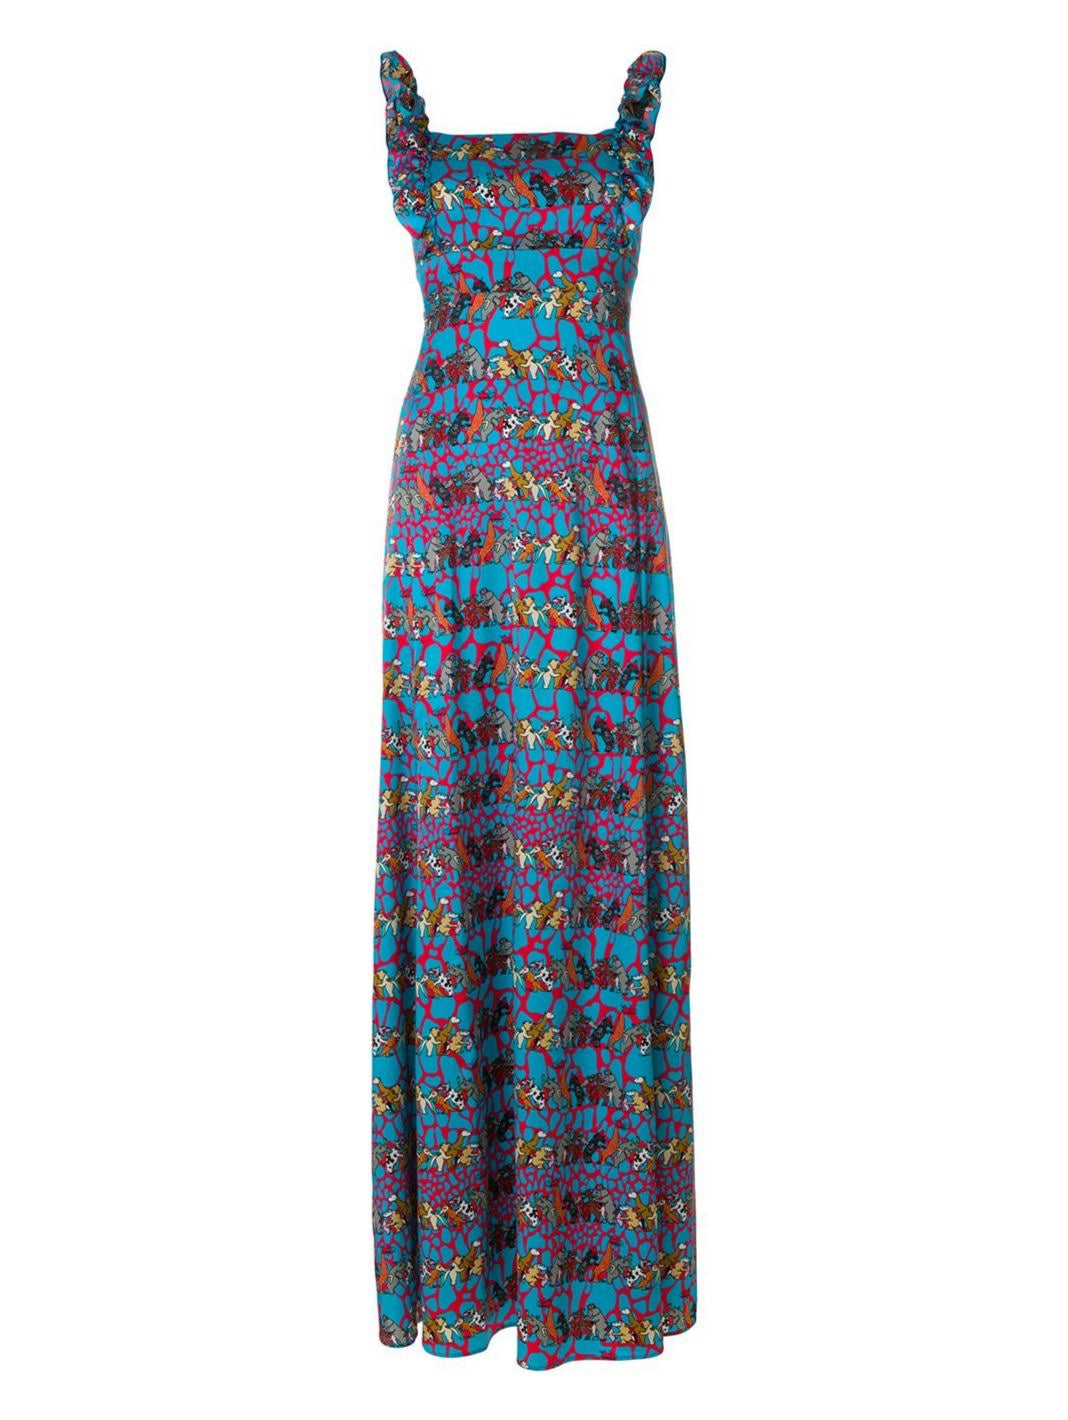 Party Animal Print Silk Dress - The Bobby Boga